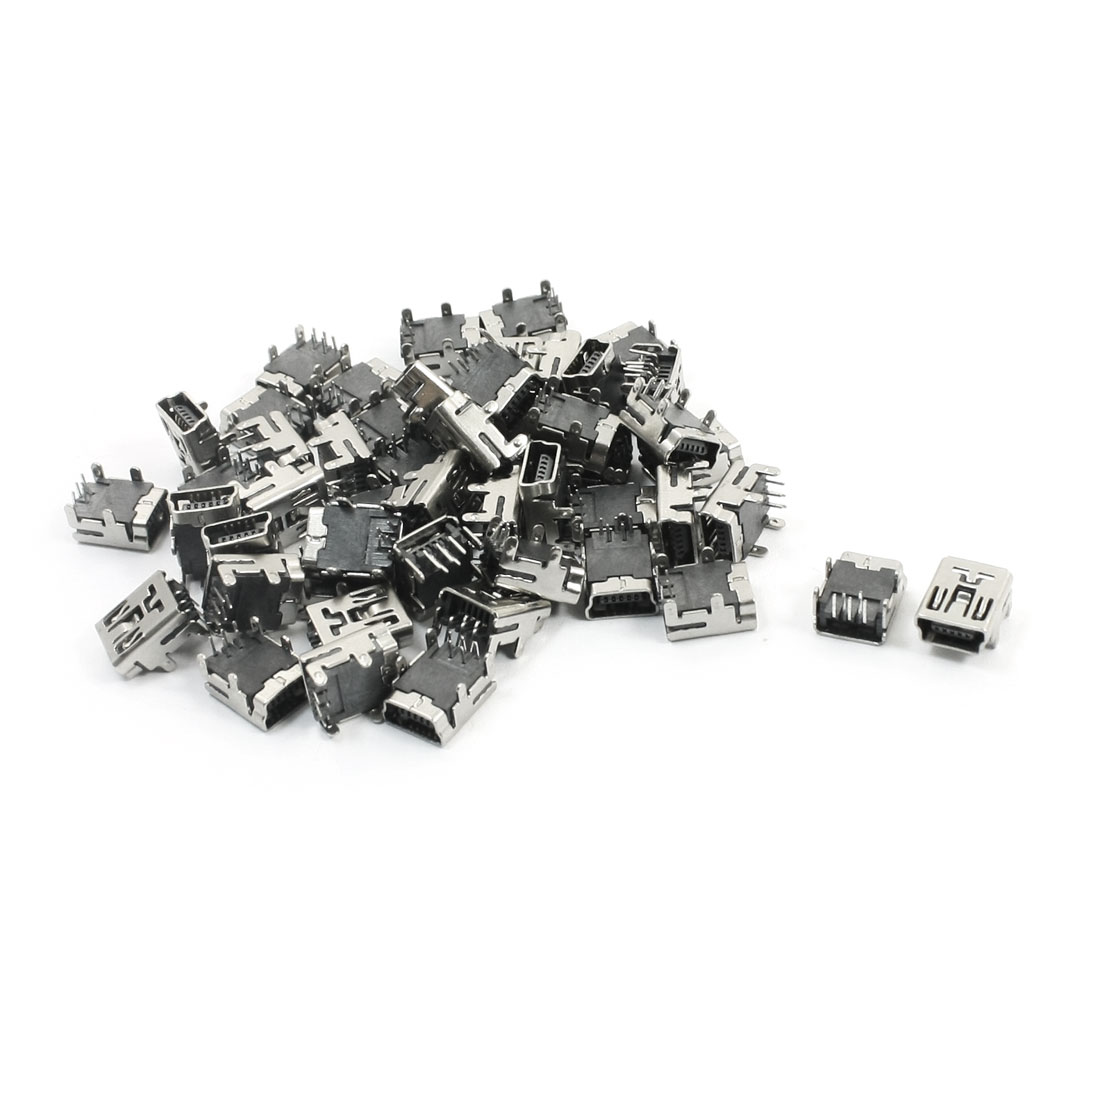 50Pcs USB Mini-B 5 Pin Silver Tone Female 90 Degree Right-Angle PCB Jack Connector Port 2.0